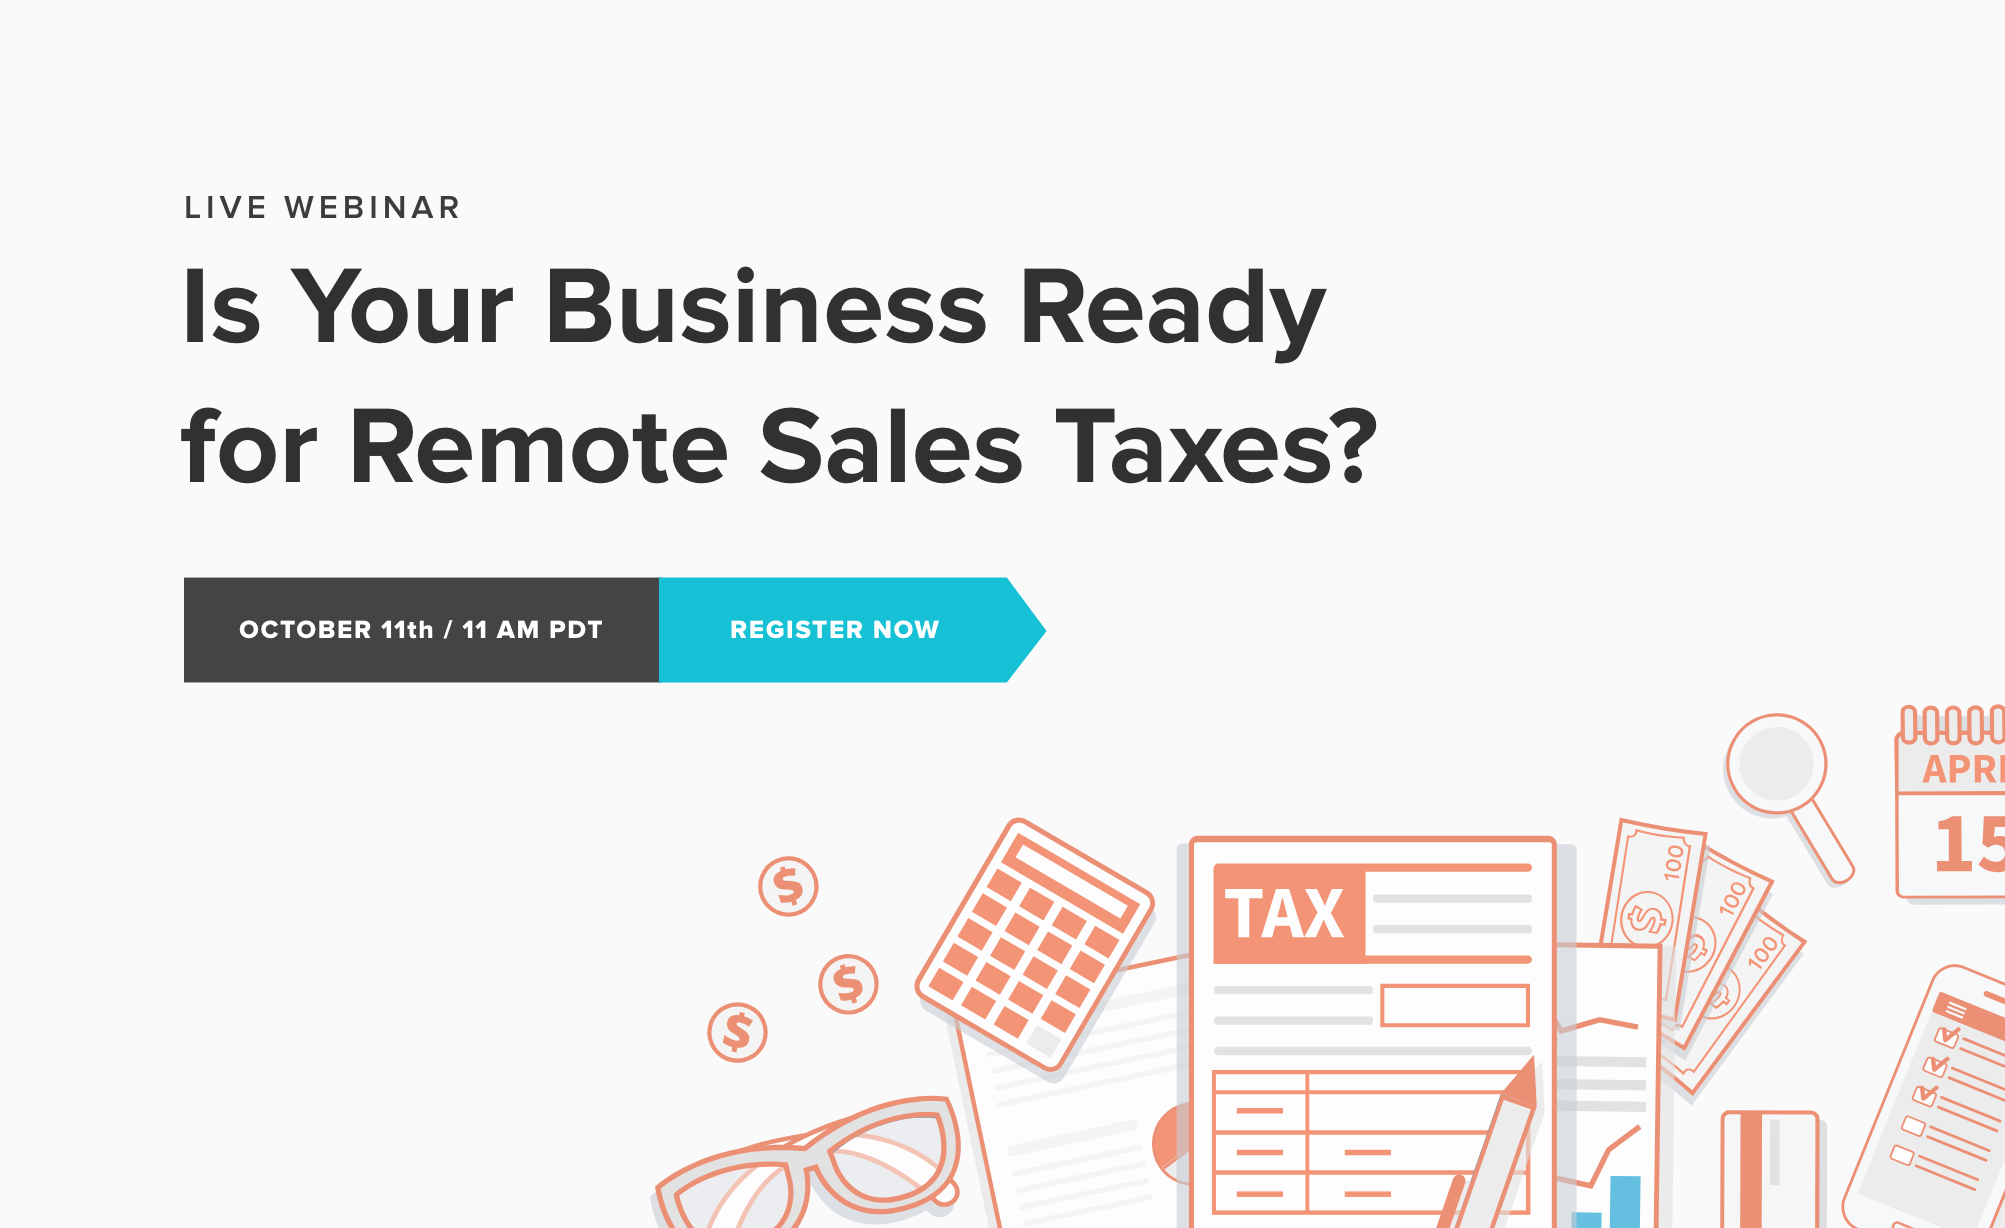 Is your business ready for remote sales taxes?